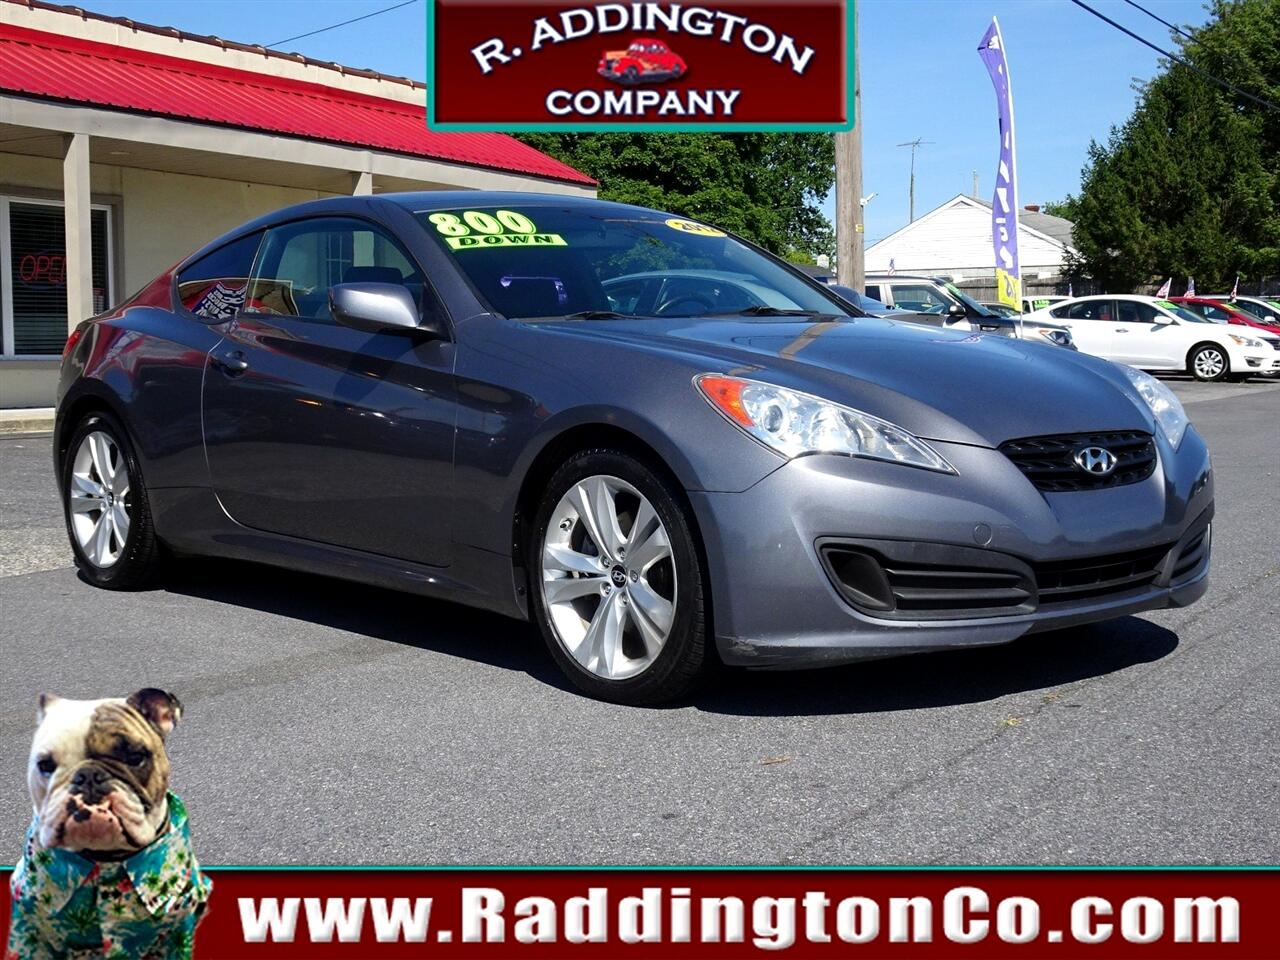 2012 Hyundai Genesis Coupe 2.0T Manual